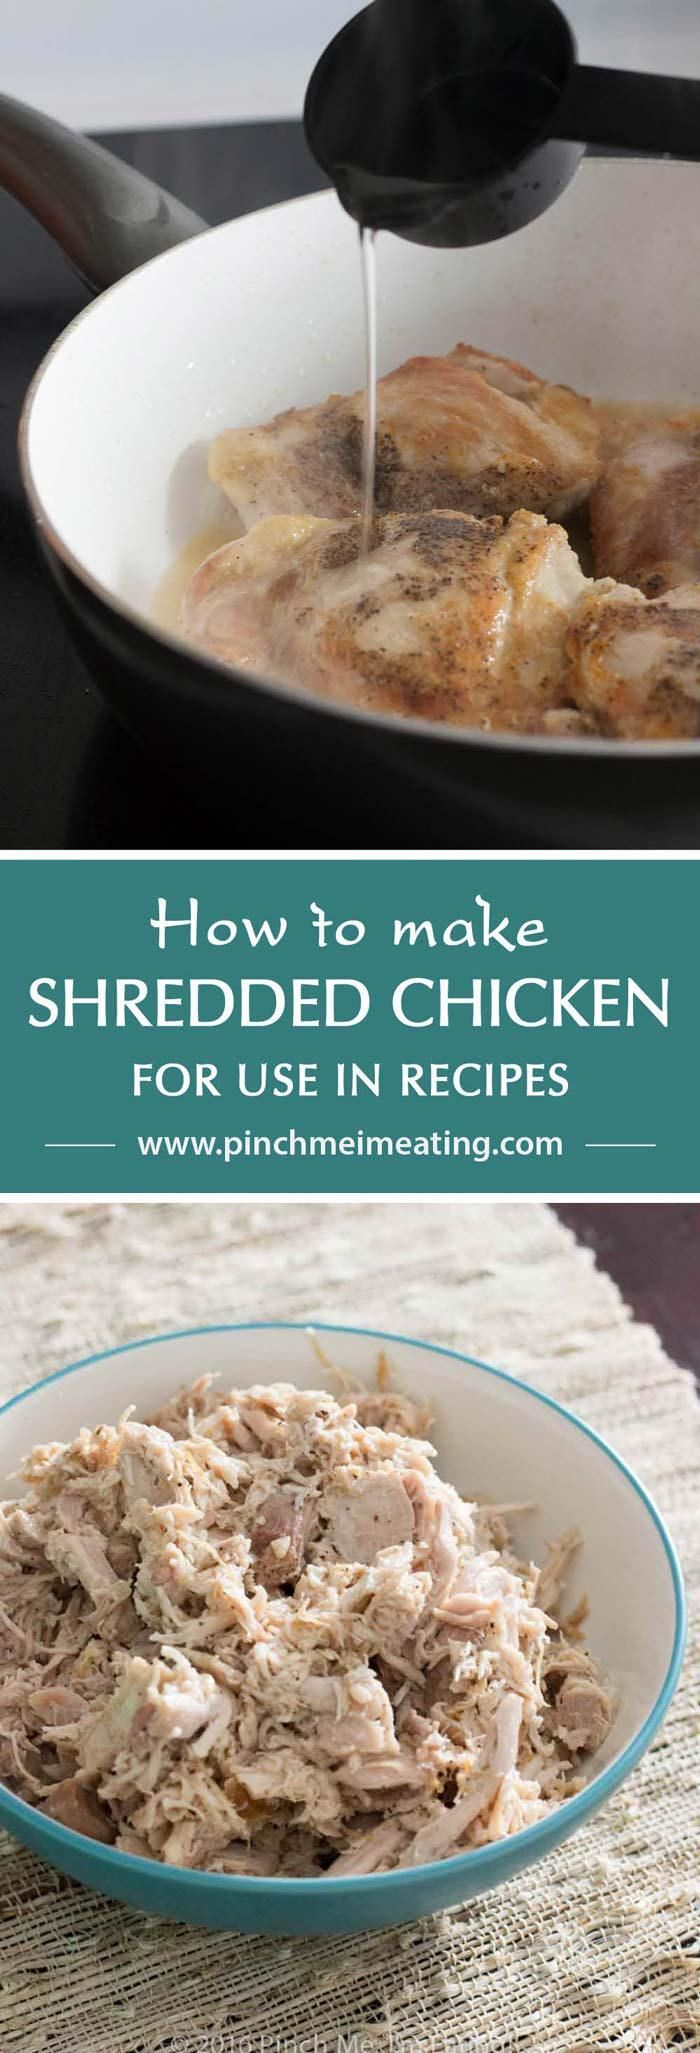 How to make shredded chicken for recipes in under 30 minutes! Flavorful, juicy…